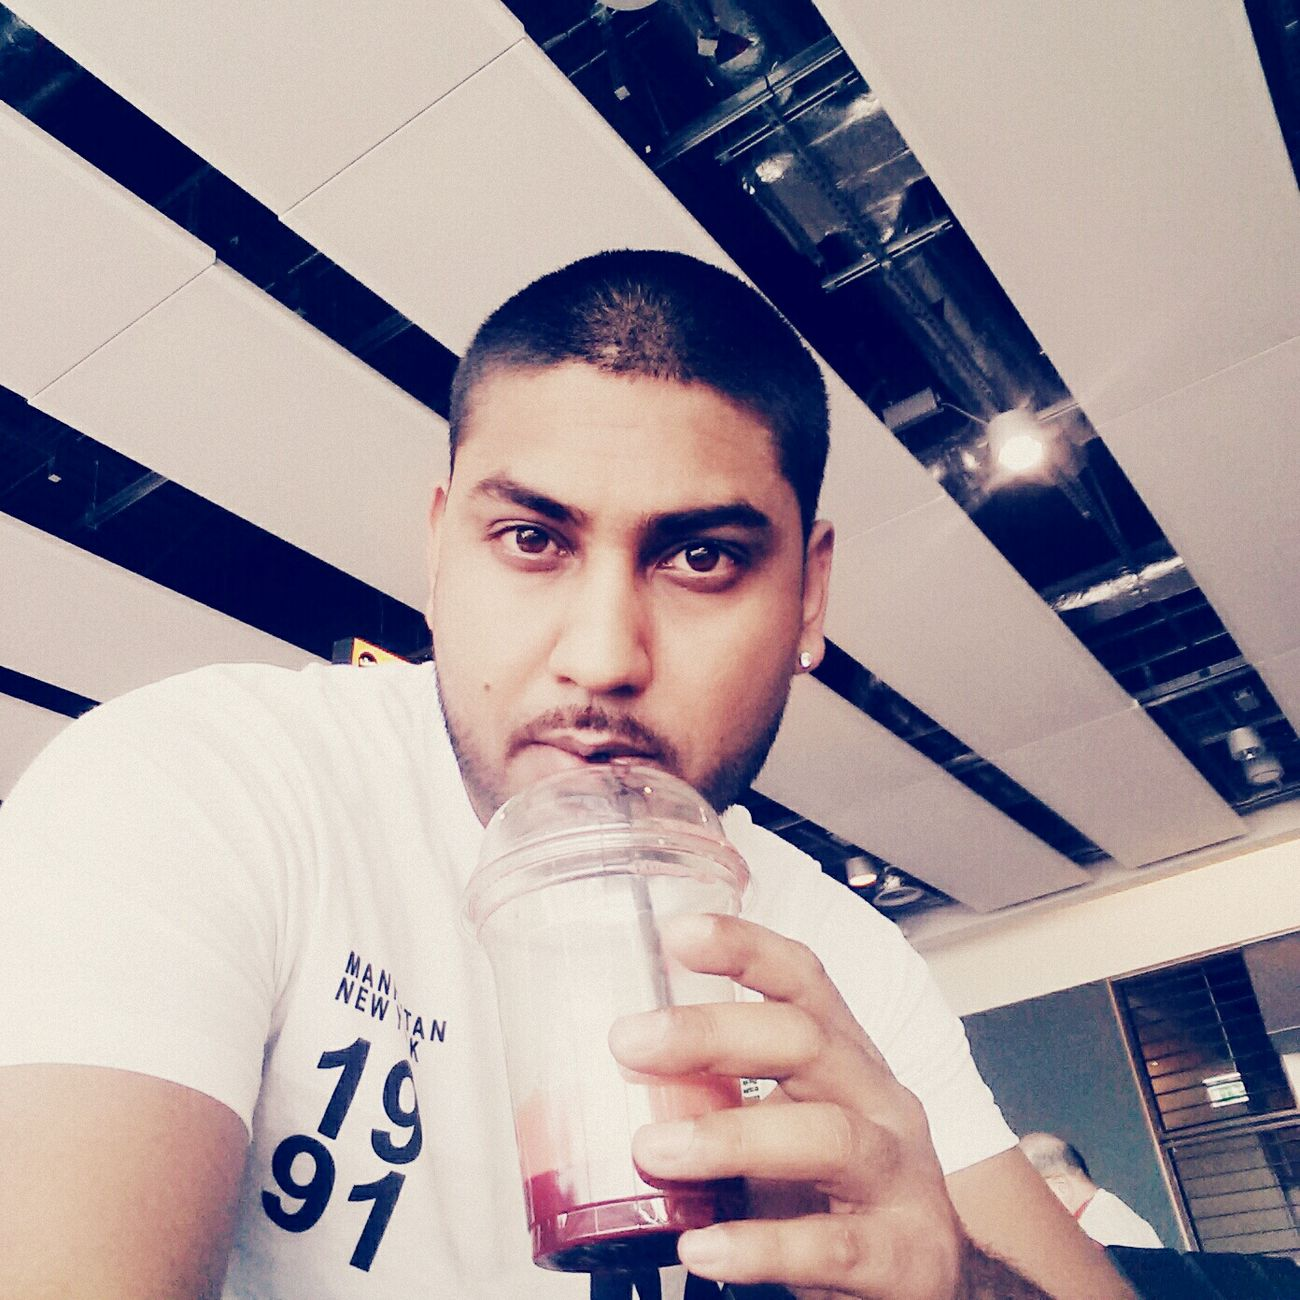 Superpowerjuice Perfectionistcaffe Londonheathrow Supertired xxxxcited too :D